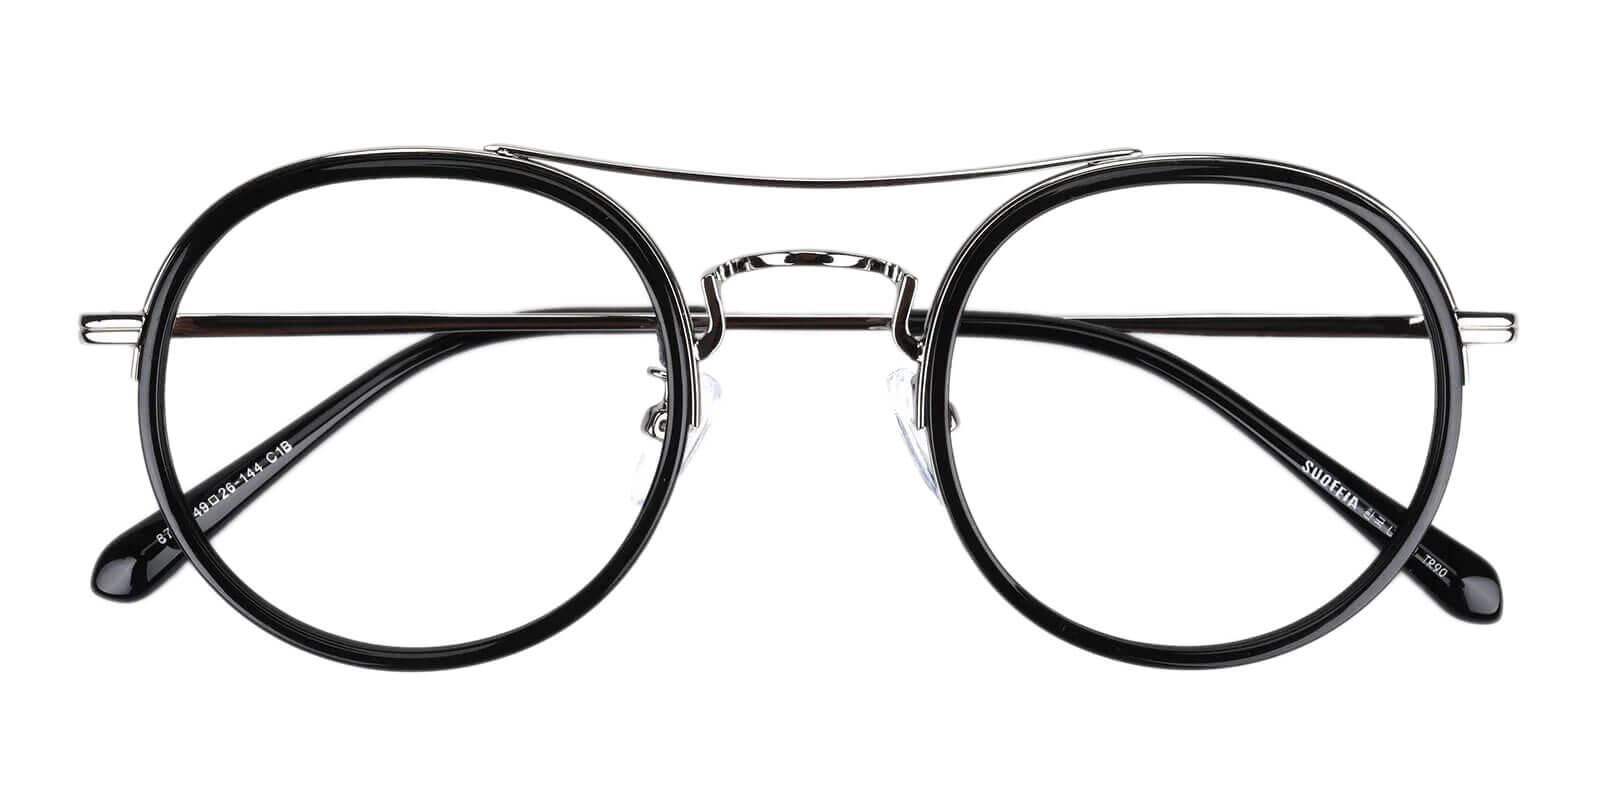 Coexist Silver Combination Eyeglasses , NosePads , SpringHinges Frames from ABBE Glasses